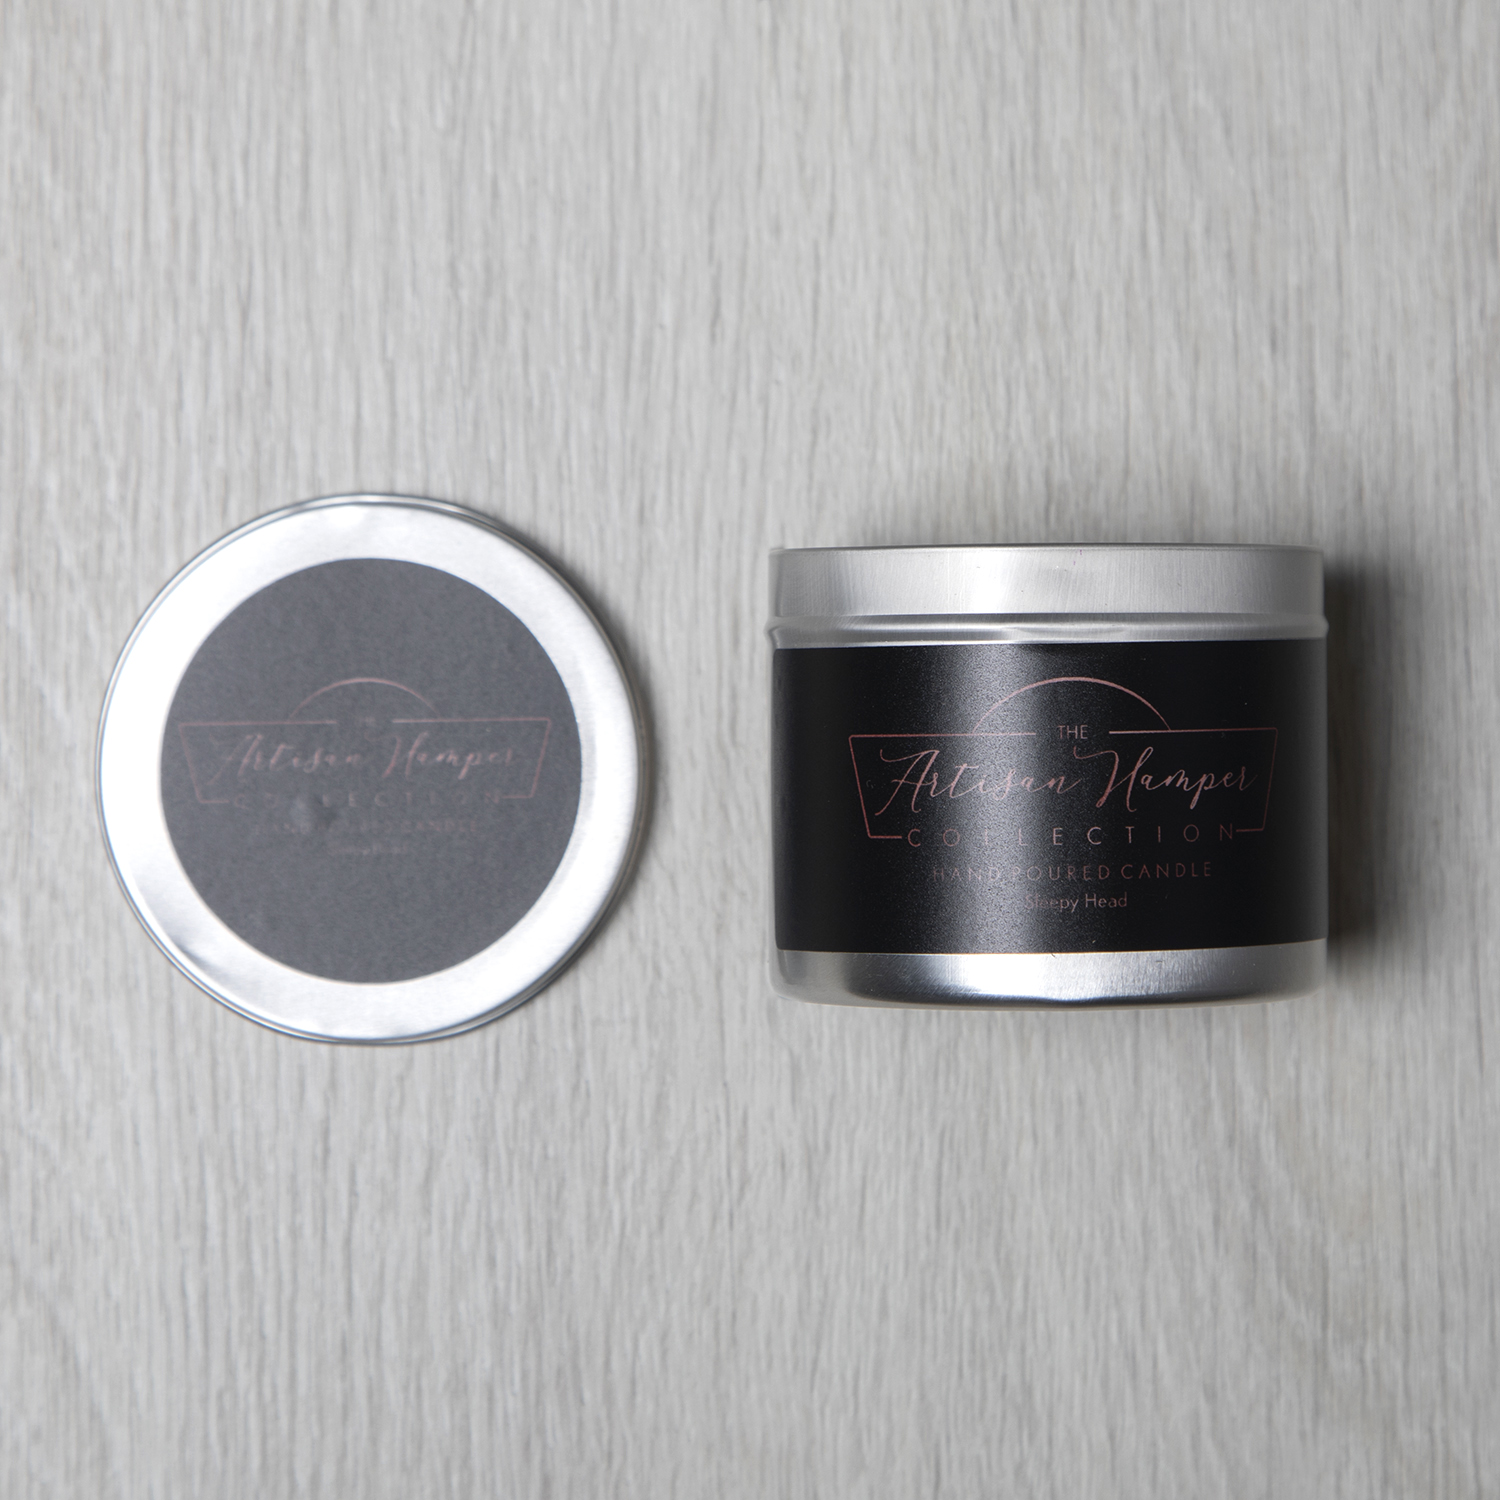 Sleepy Head Candle - The artisan hamper collection